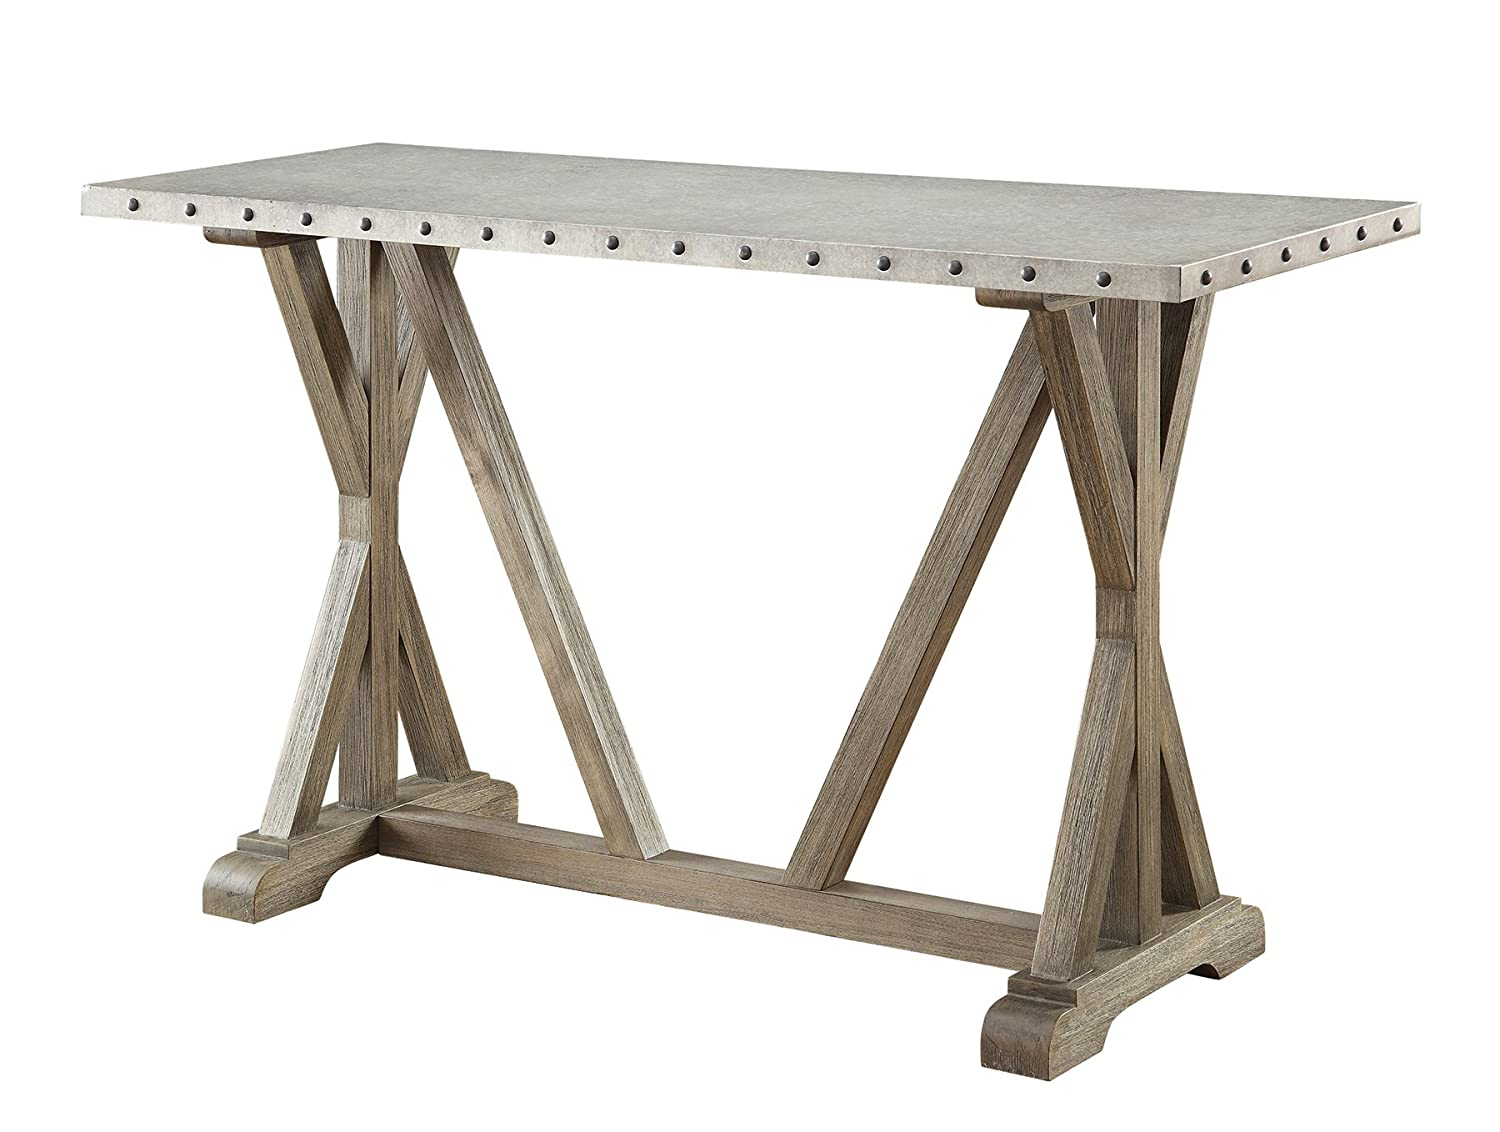 Amazon coaster 703749 home furnishings sofa table driftwood amazon coaster 703749 home furnishings sofa table driftwood kitchen dining geotapseo Images